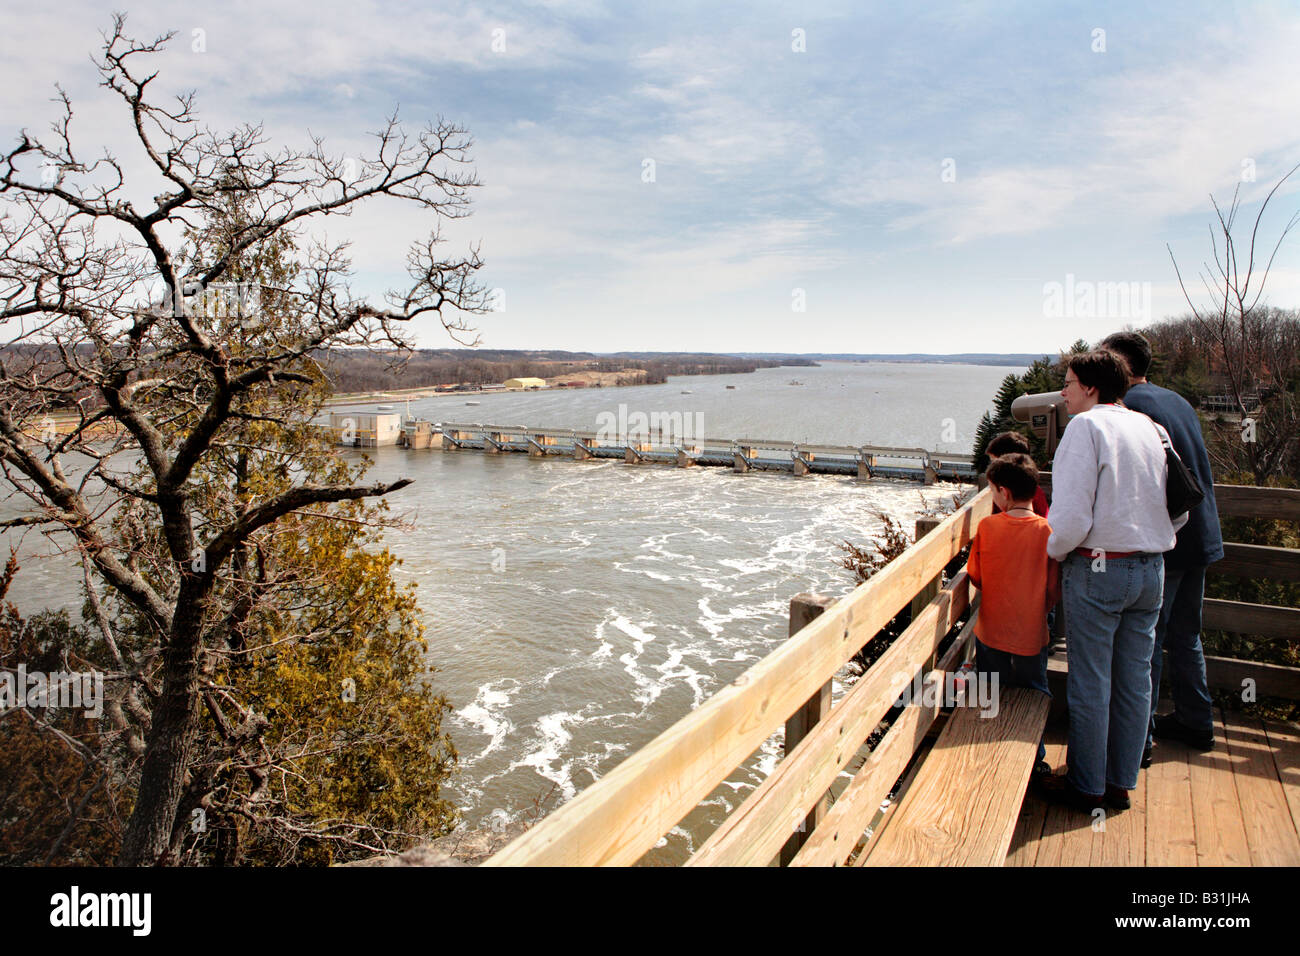 FAMILY LOOKING AT THE HYDROELECTRIC POWER PLANT ON ILLINOIS RIVER FROM A VIEWING PLATFORM IN STARVED ROCK STATE - Stock Image